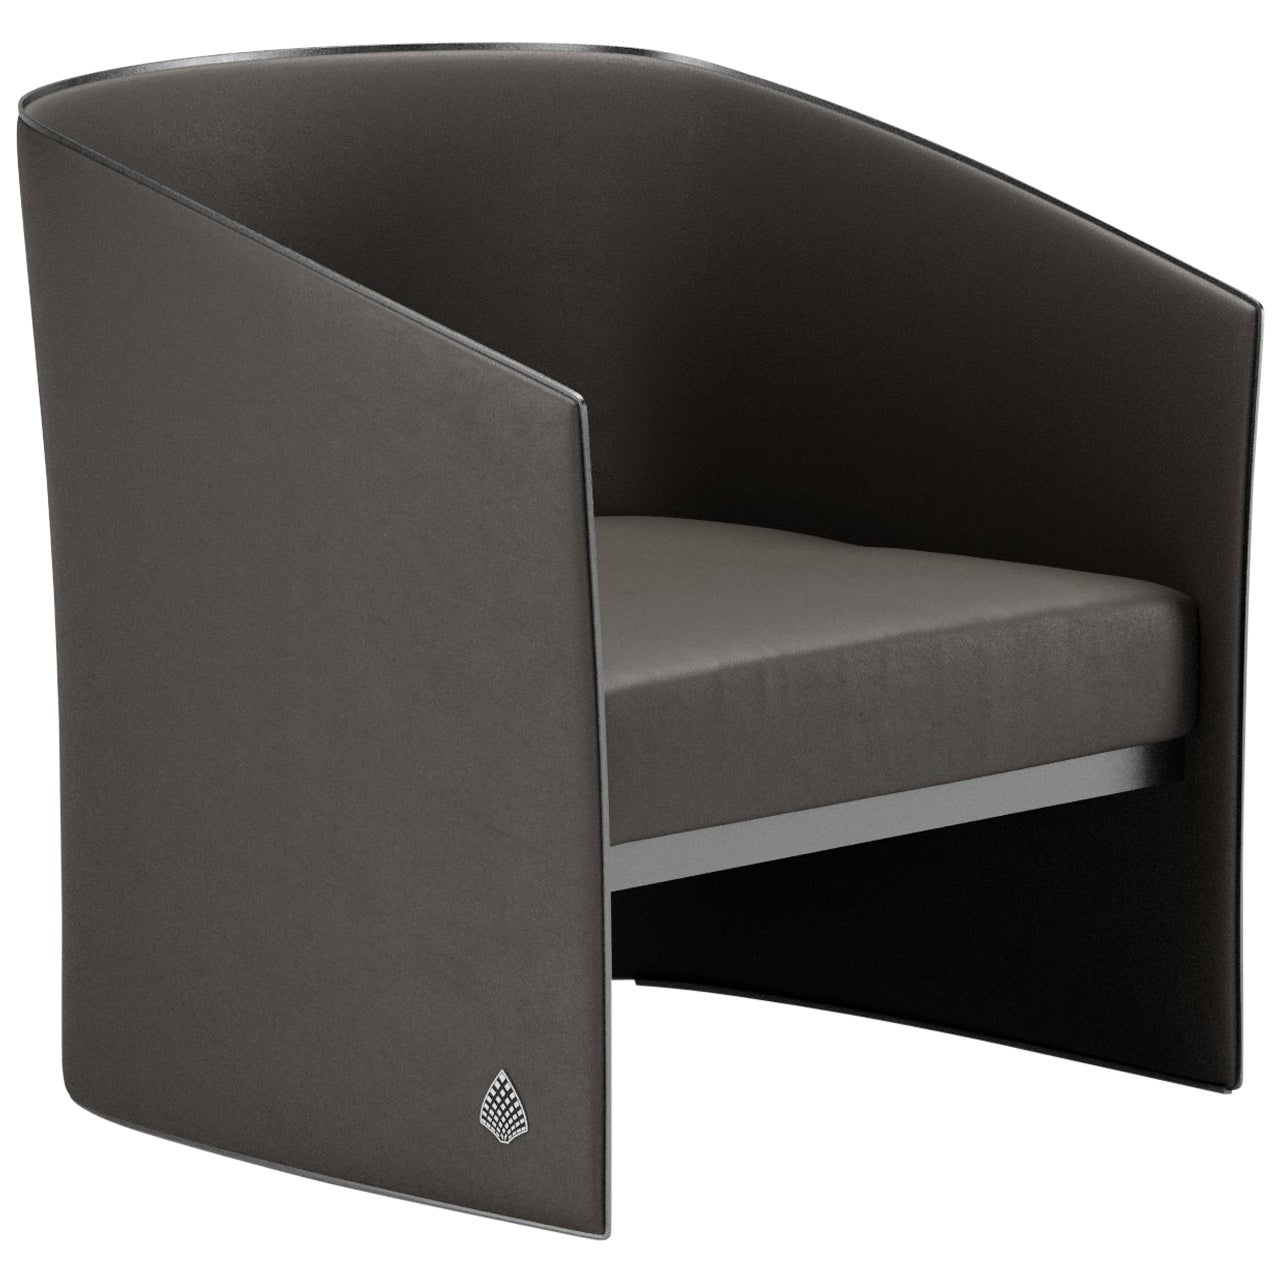 Lawrence Contemporary Armchair by Fabio Arcaini Leather Seating Hardshell